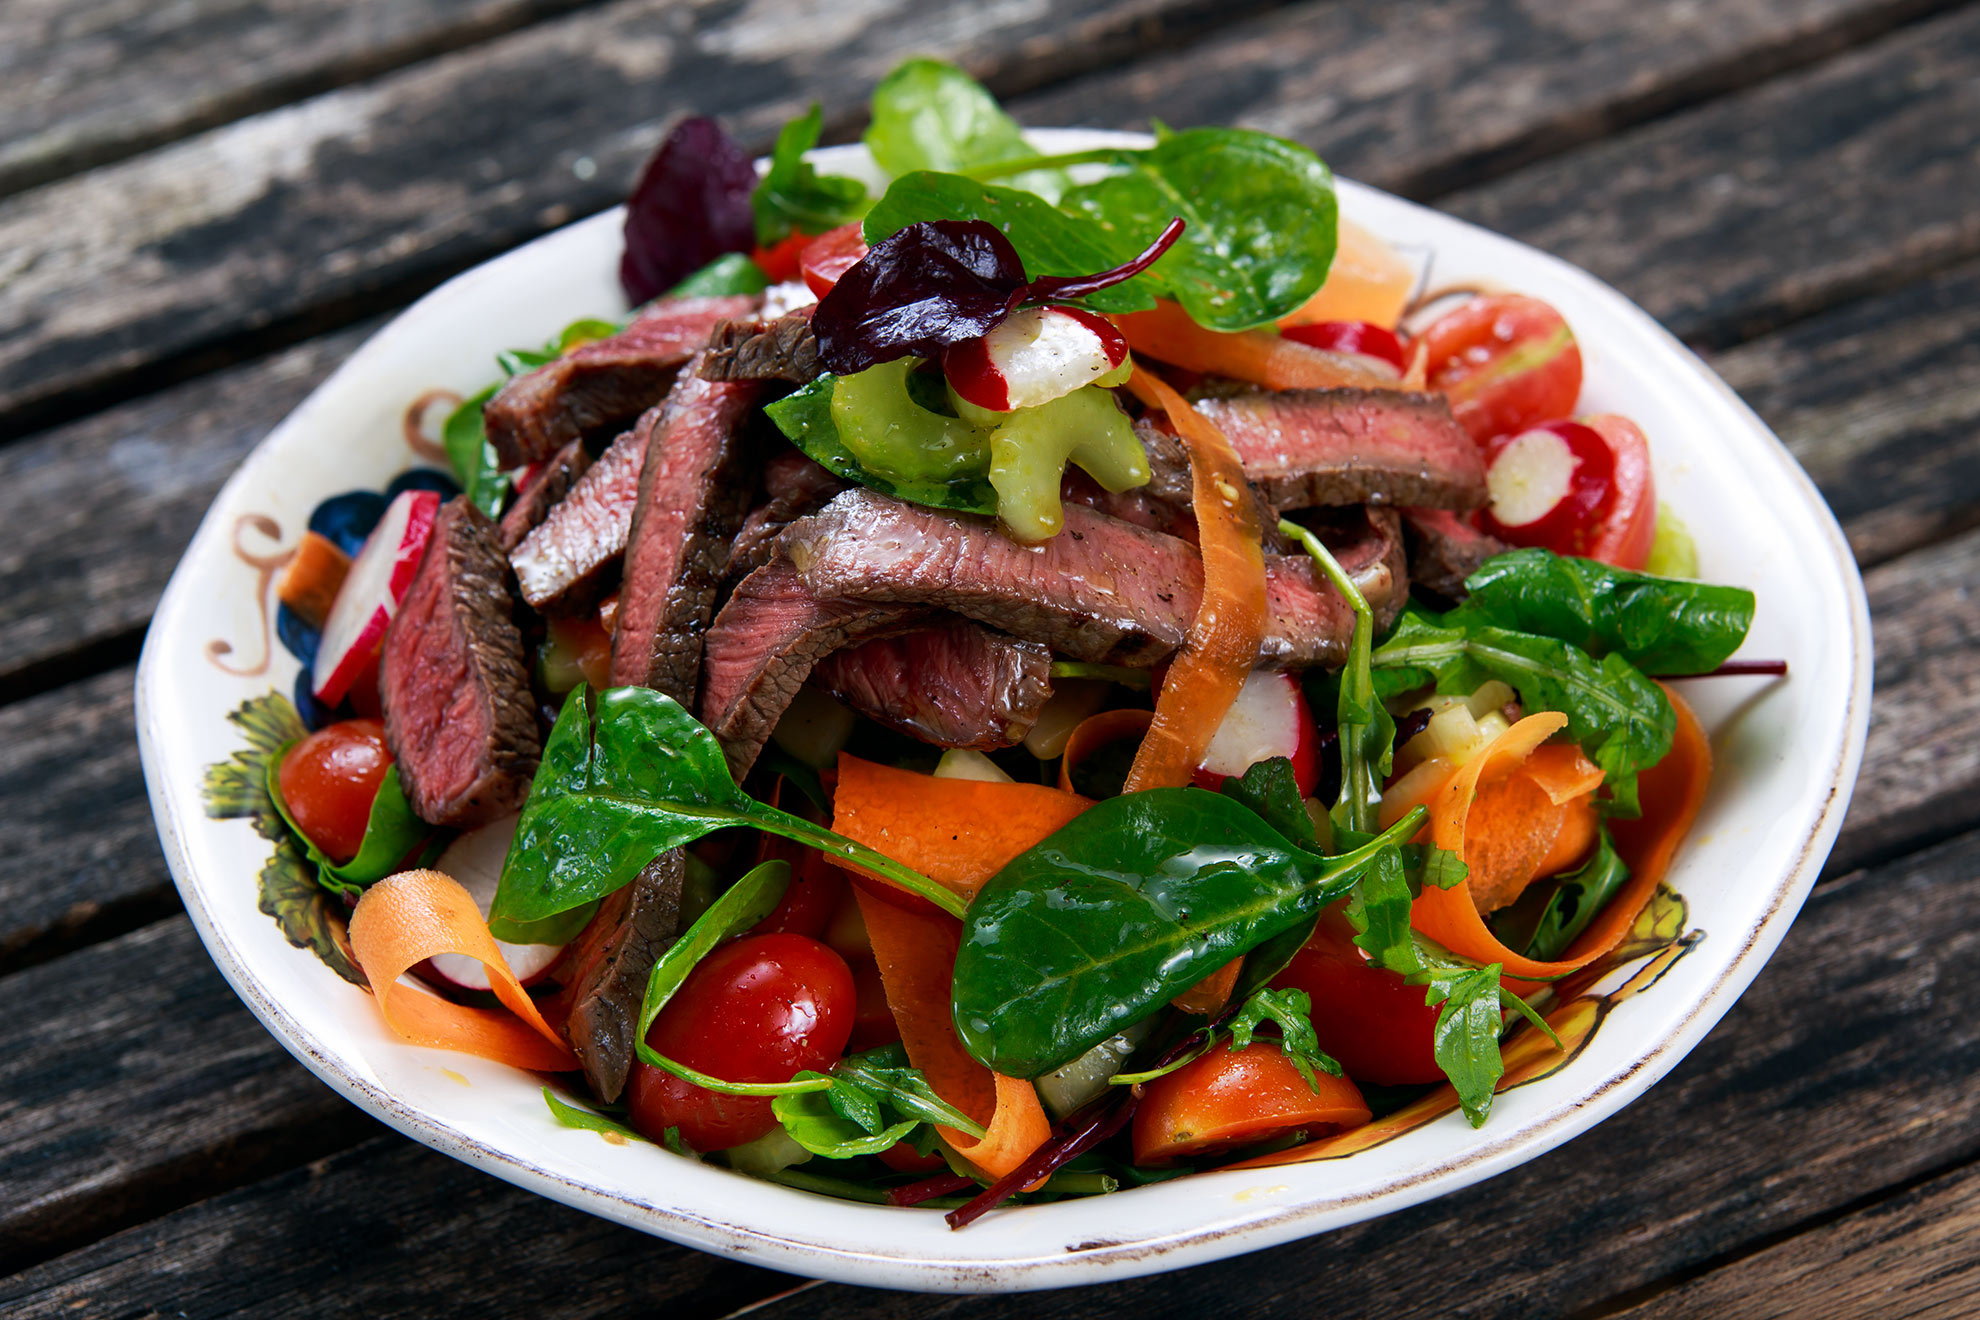 Marinated-Steak-Salad